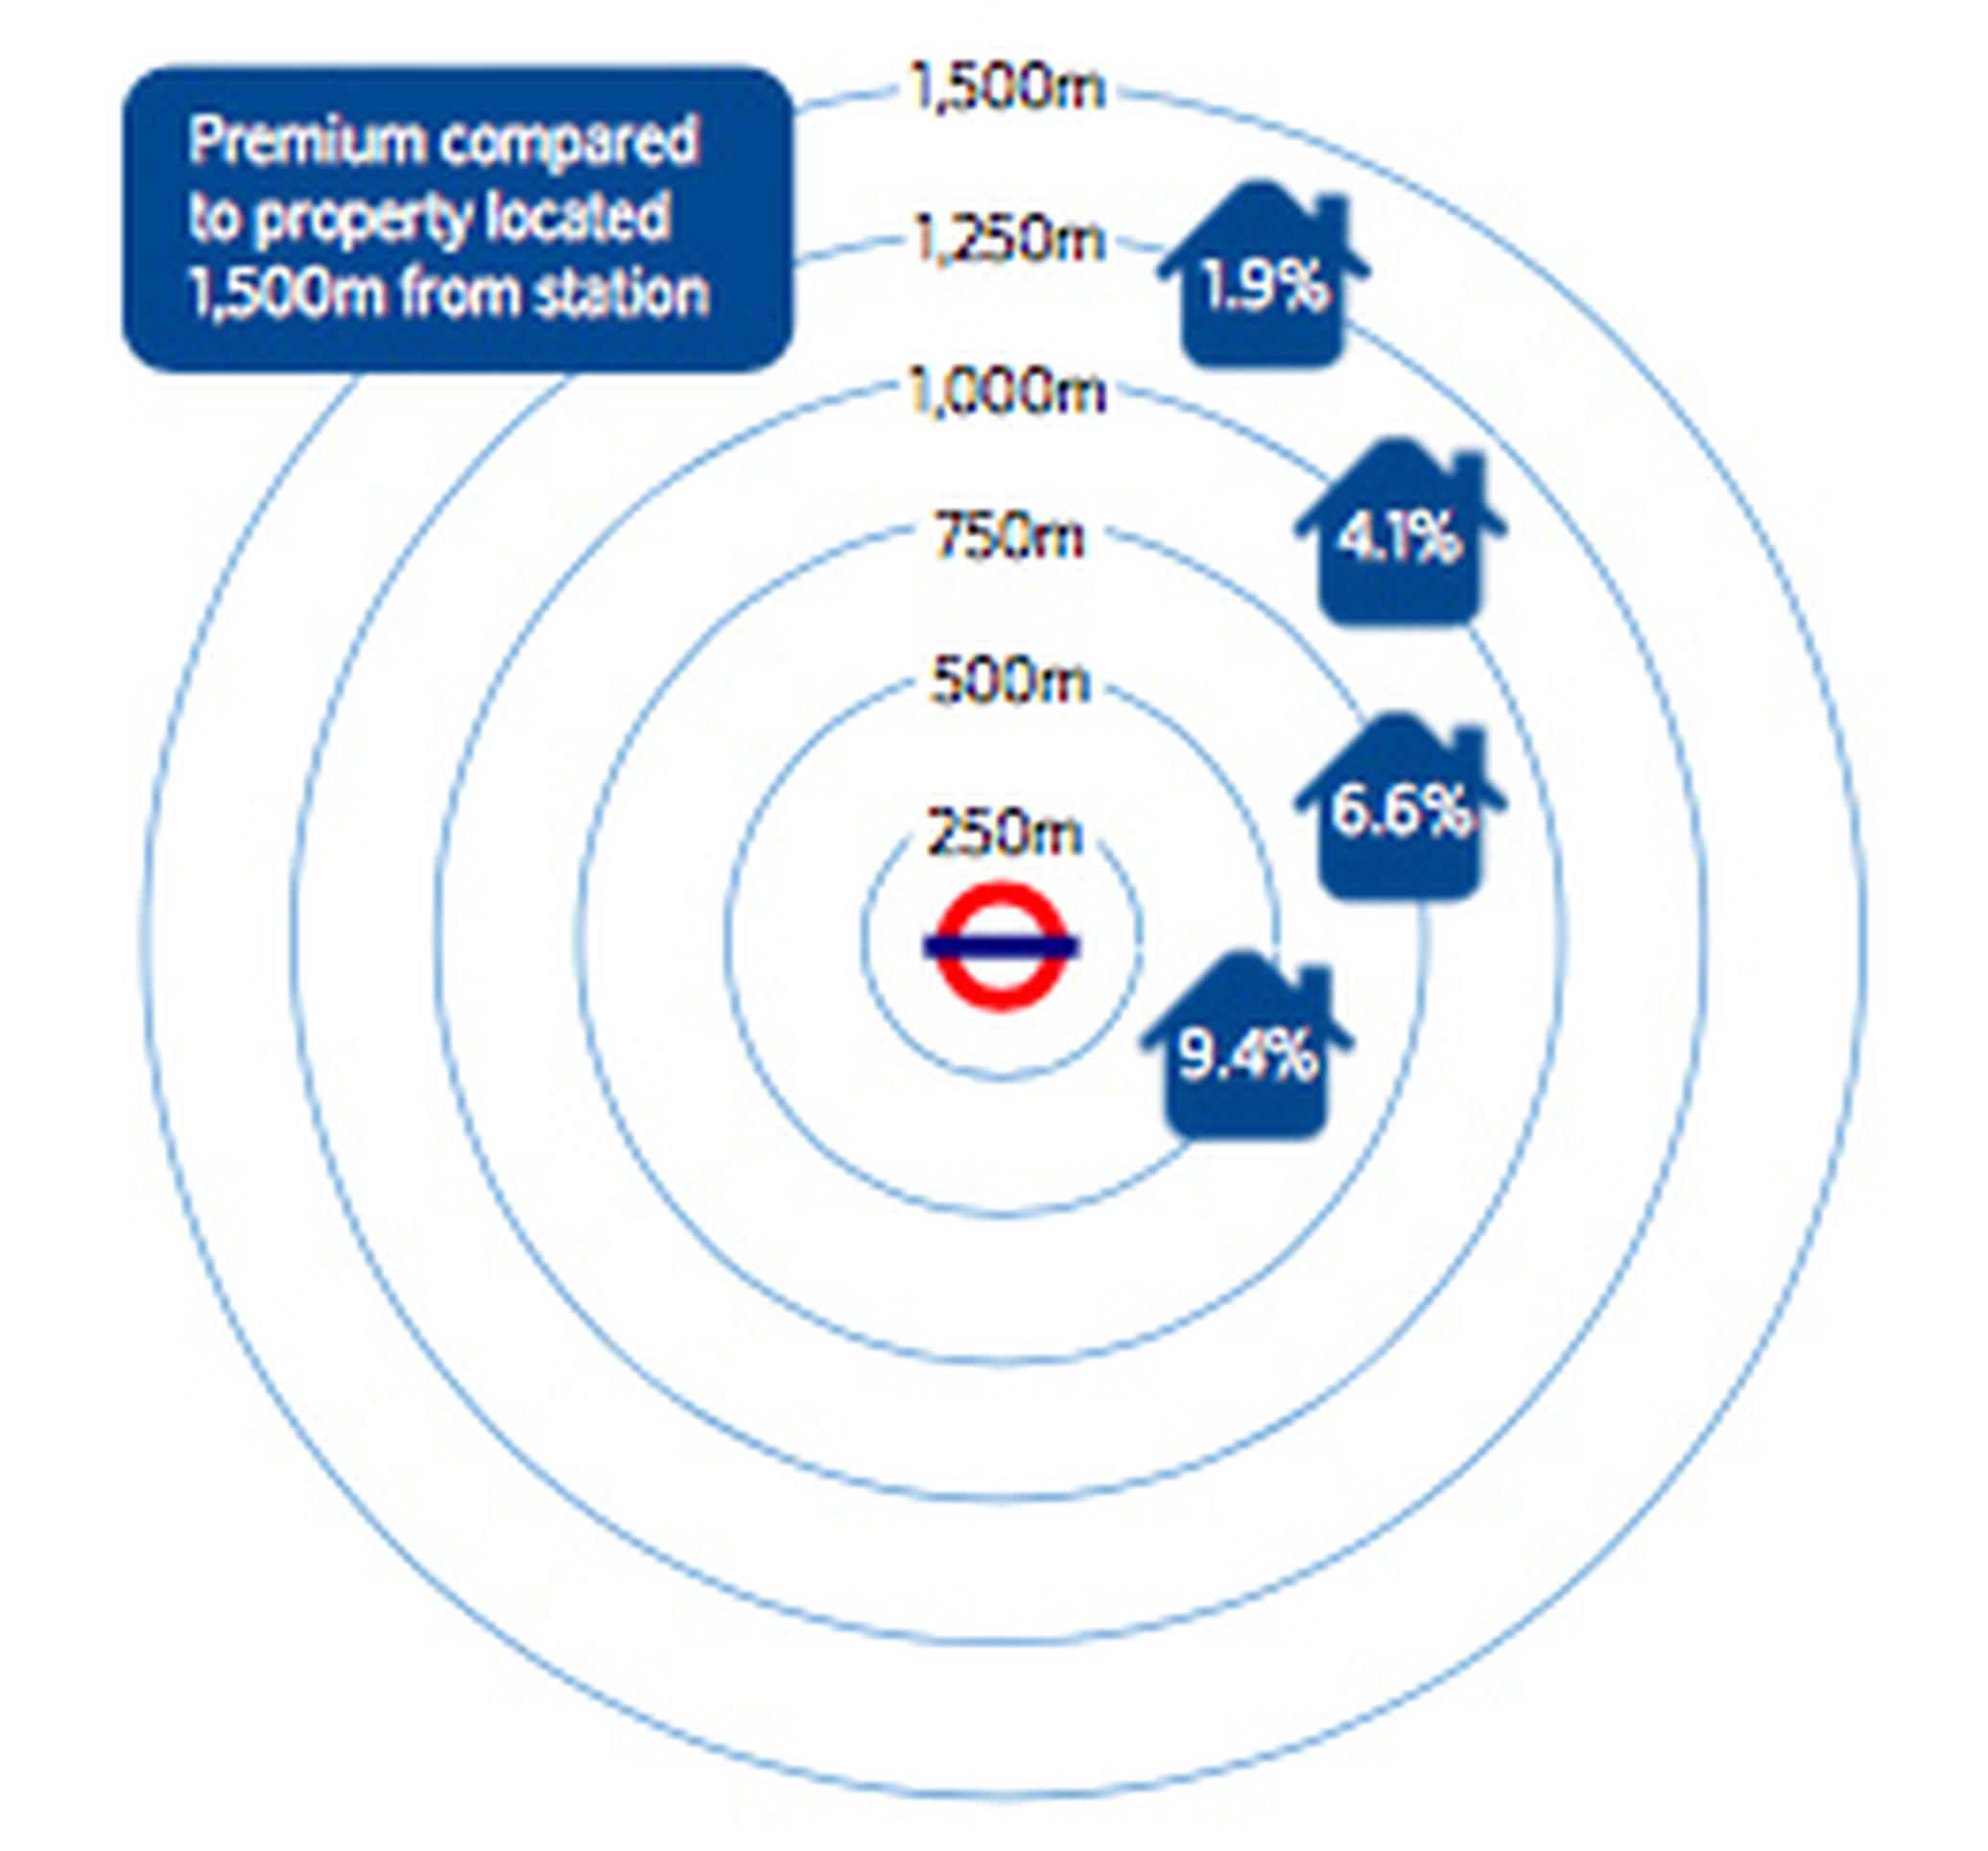 A house 500 metres away from a London station is worth 9.4 per cent more than a comparable house 1.5km from the station